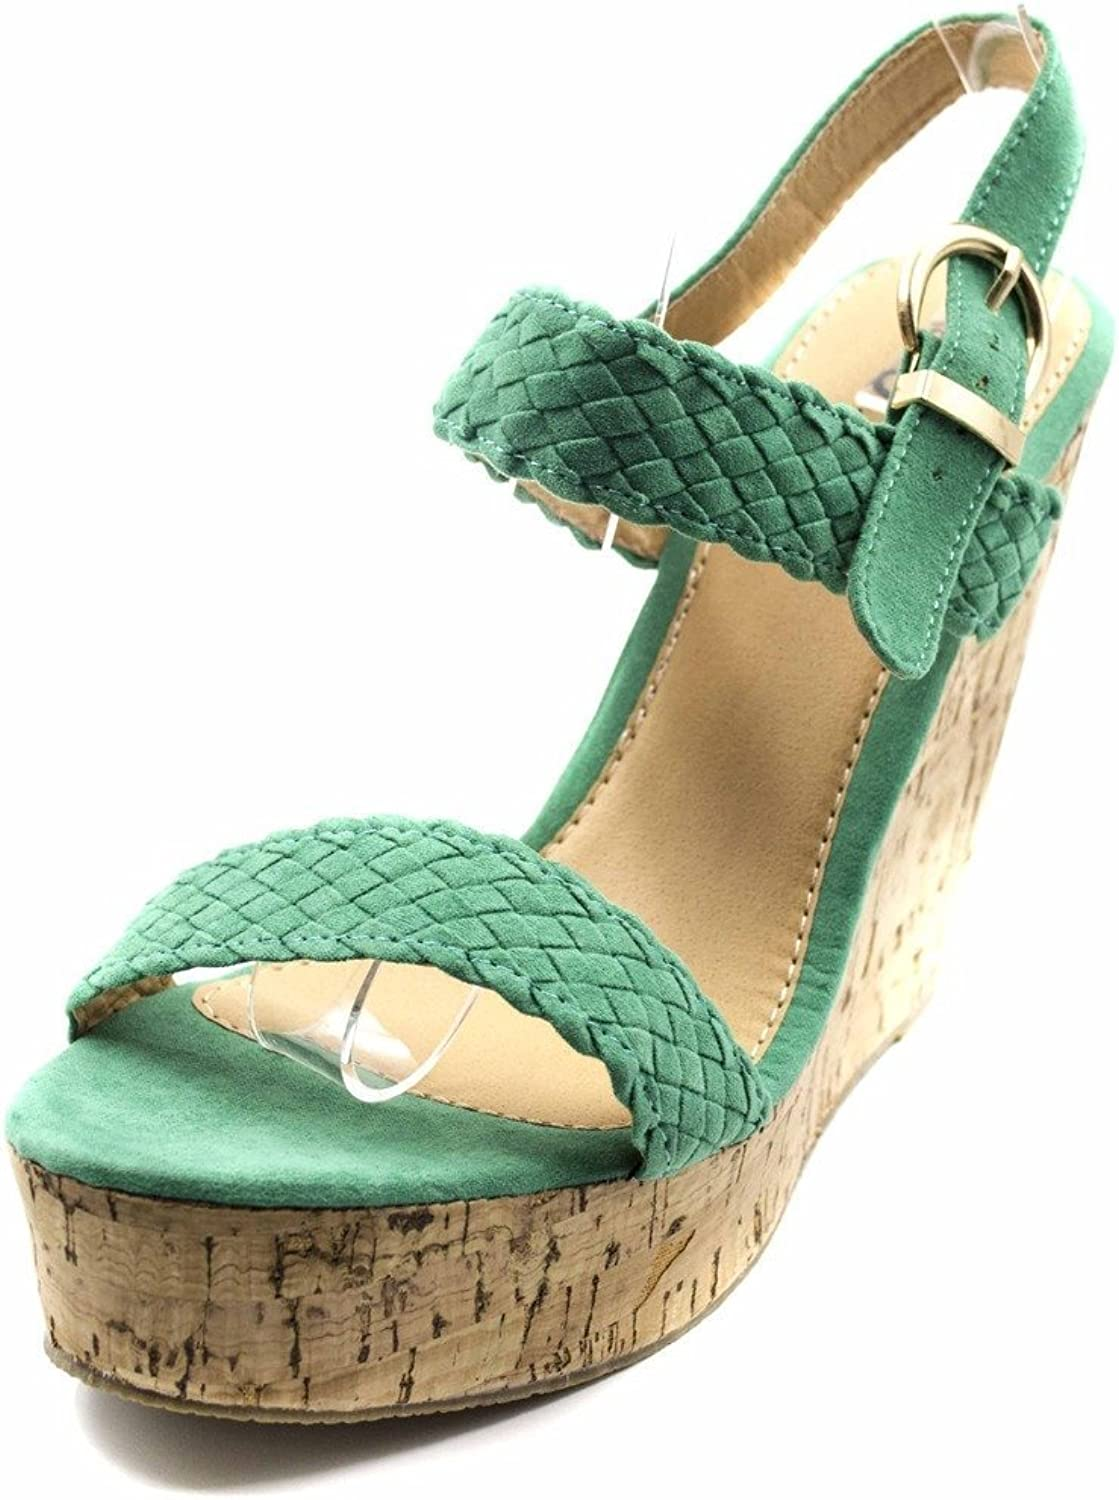 Orly shoes Women's Suede Braided Peep Toe Cork Wedge Sandals with Back Srap